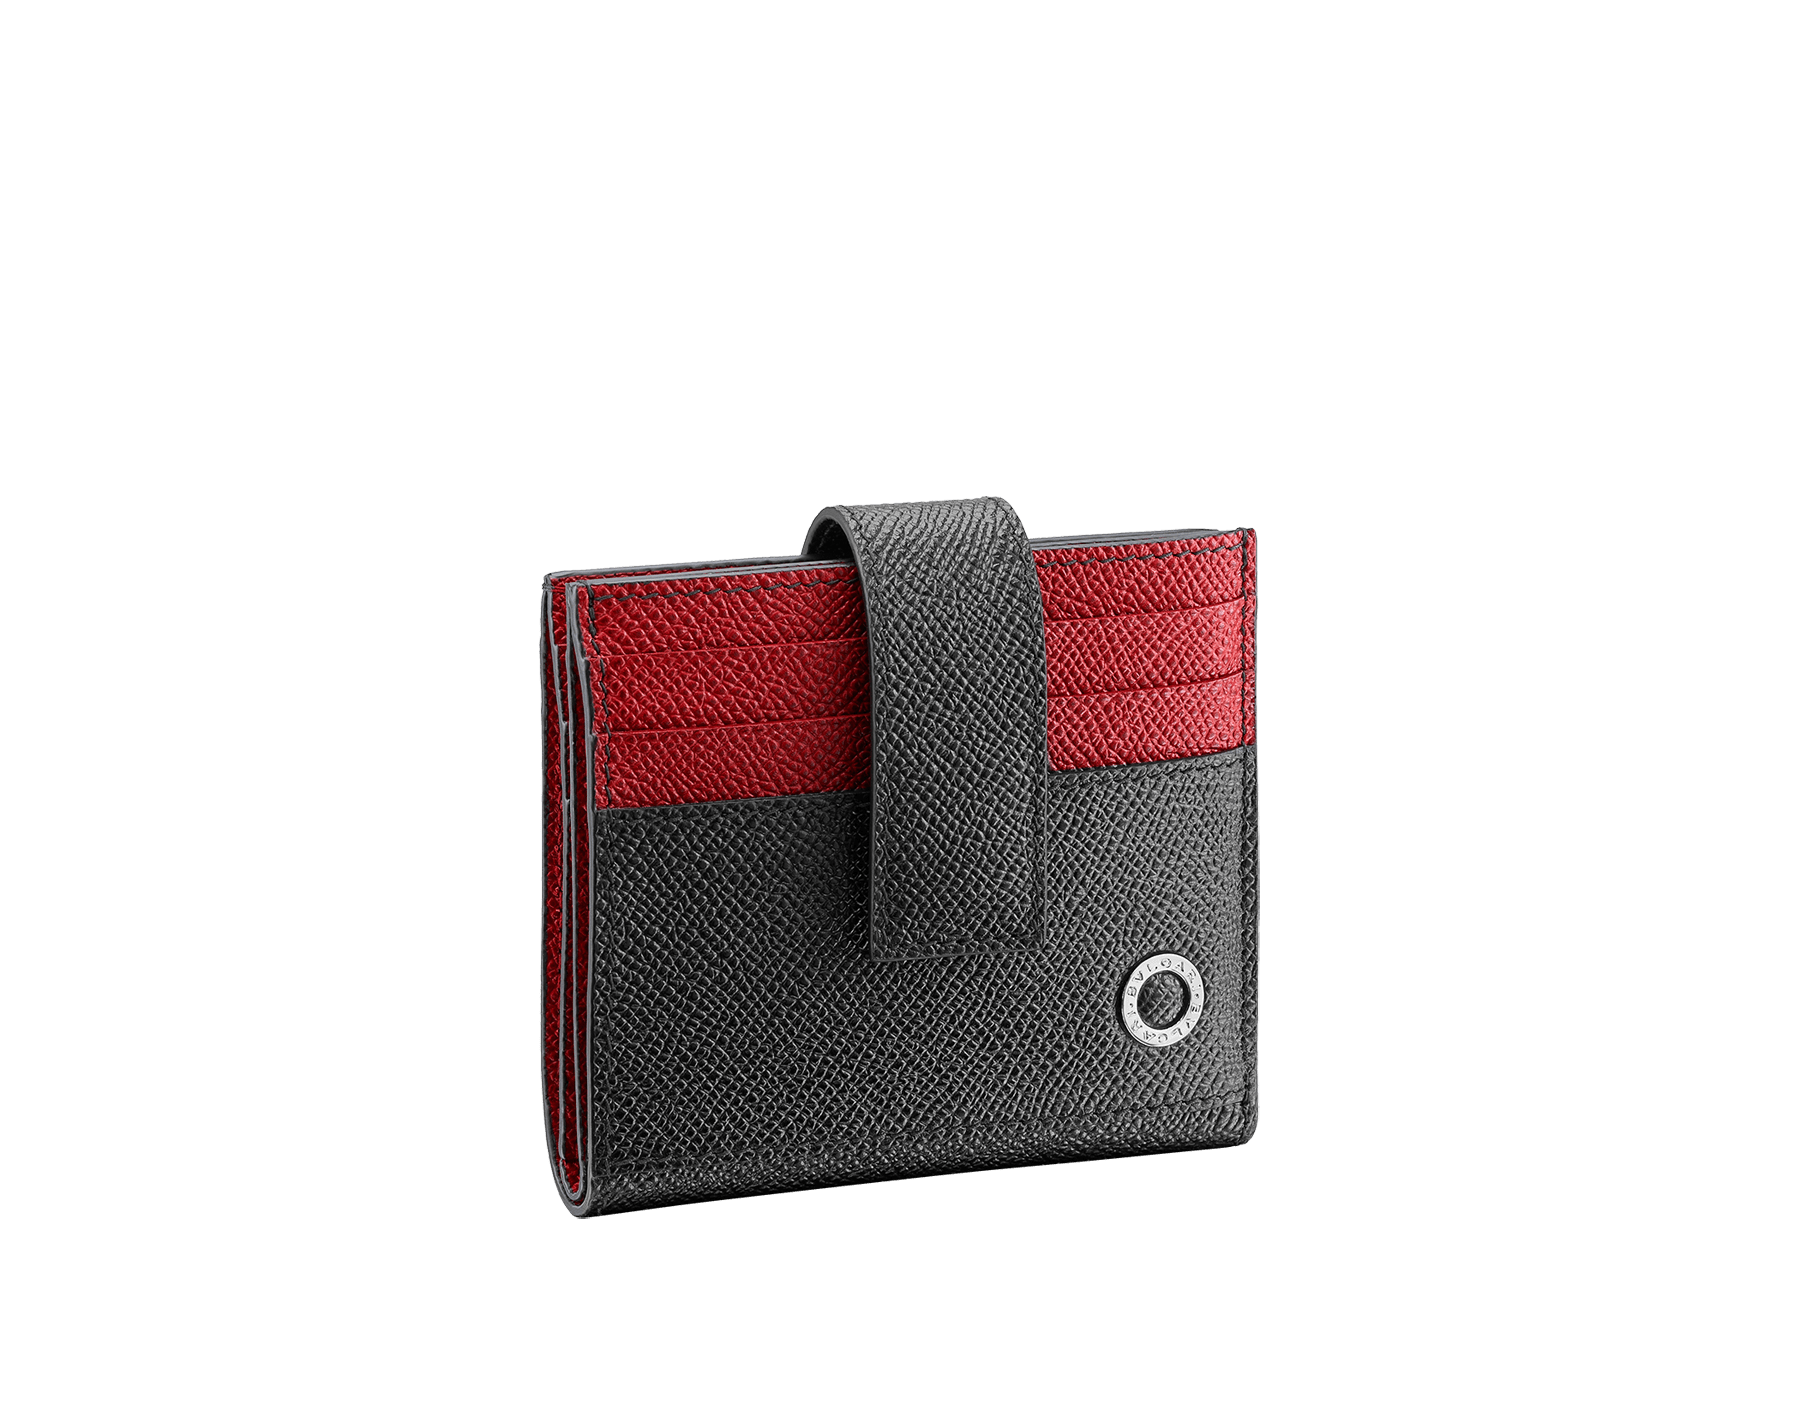 """BVLGARI BVLGARI"" card holder in black and ruby red grain calf leather. Iconic logo decoration in palladium plated brass. 290070 image 1"